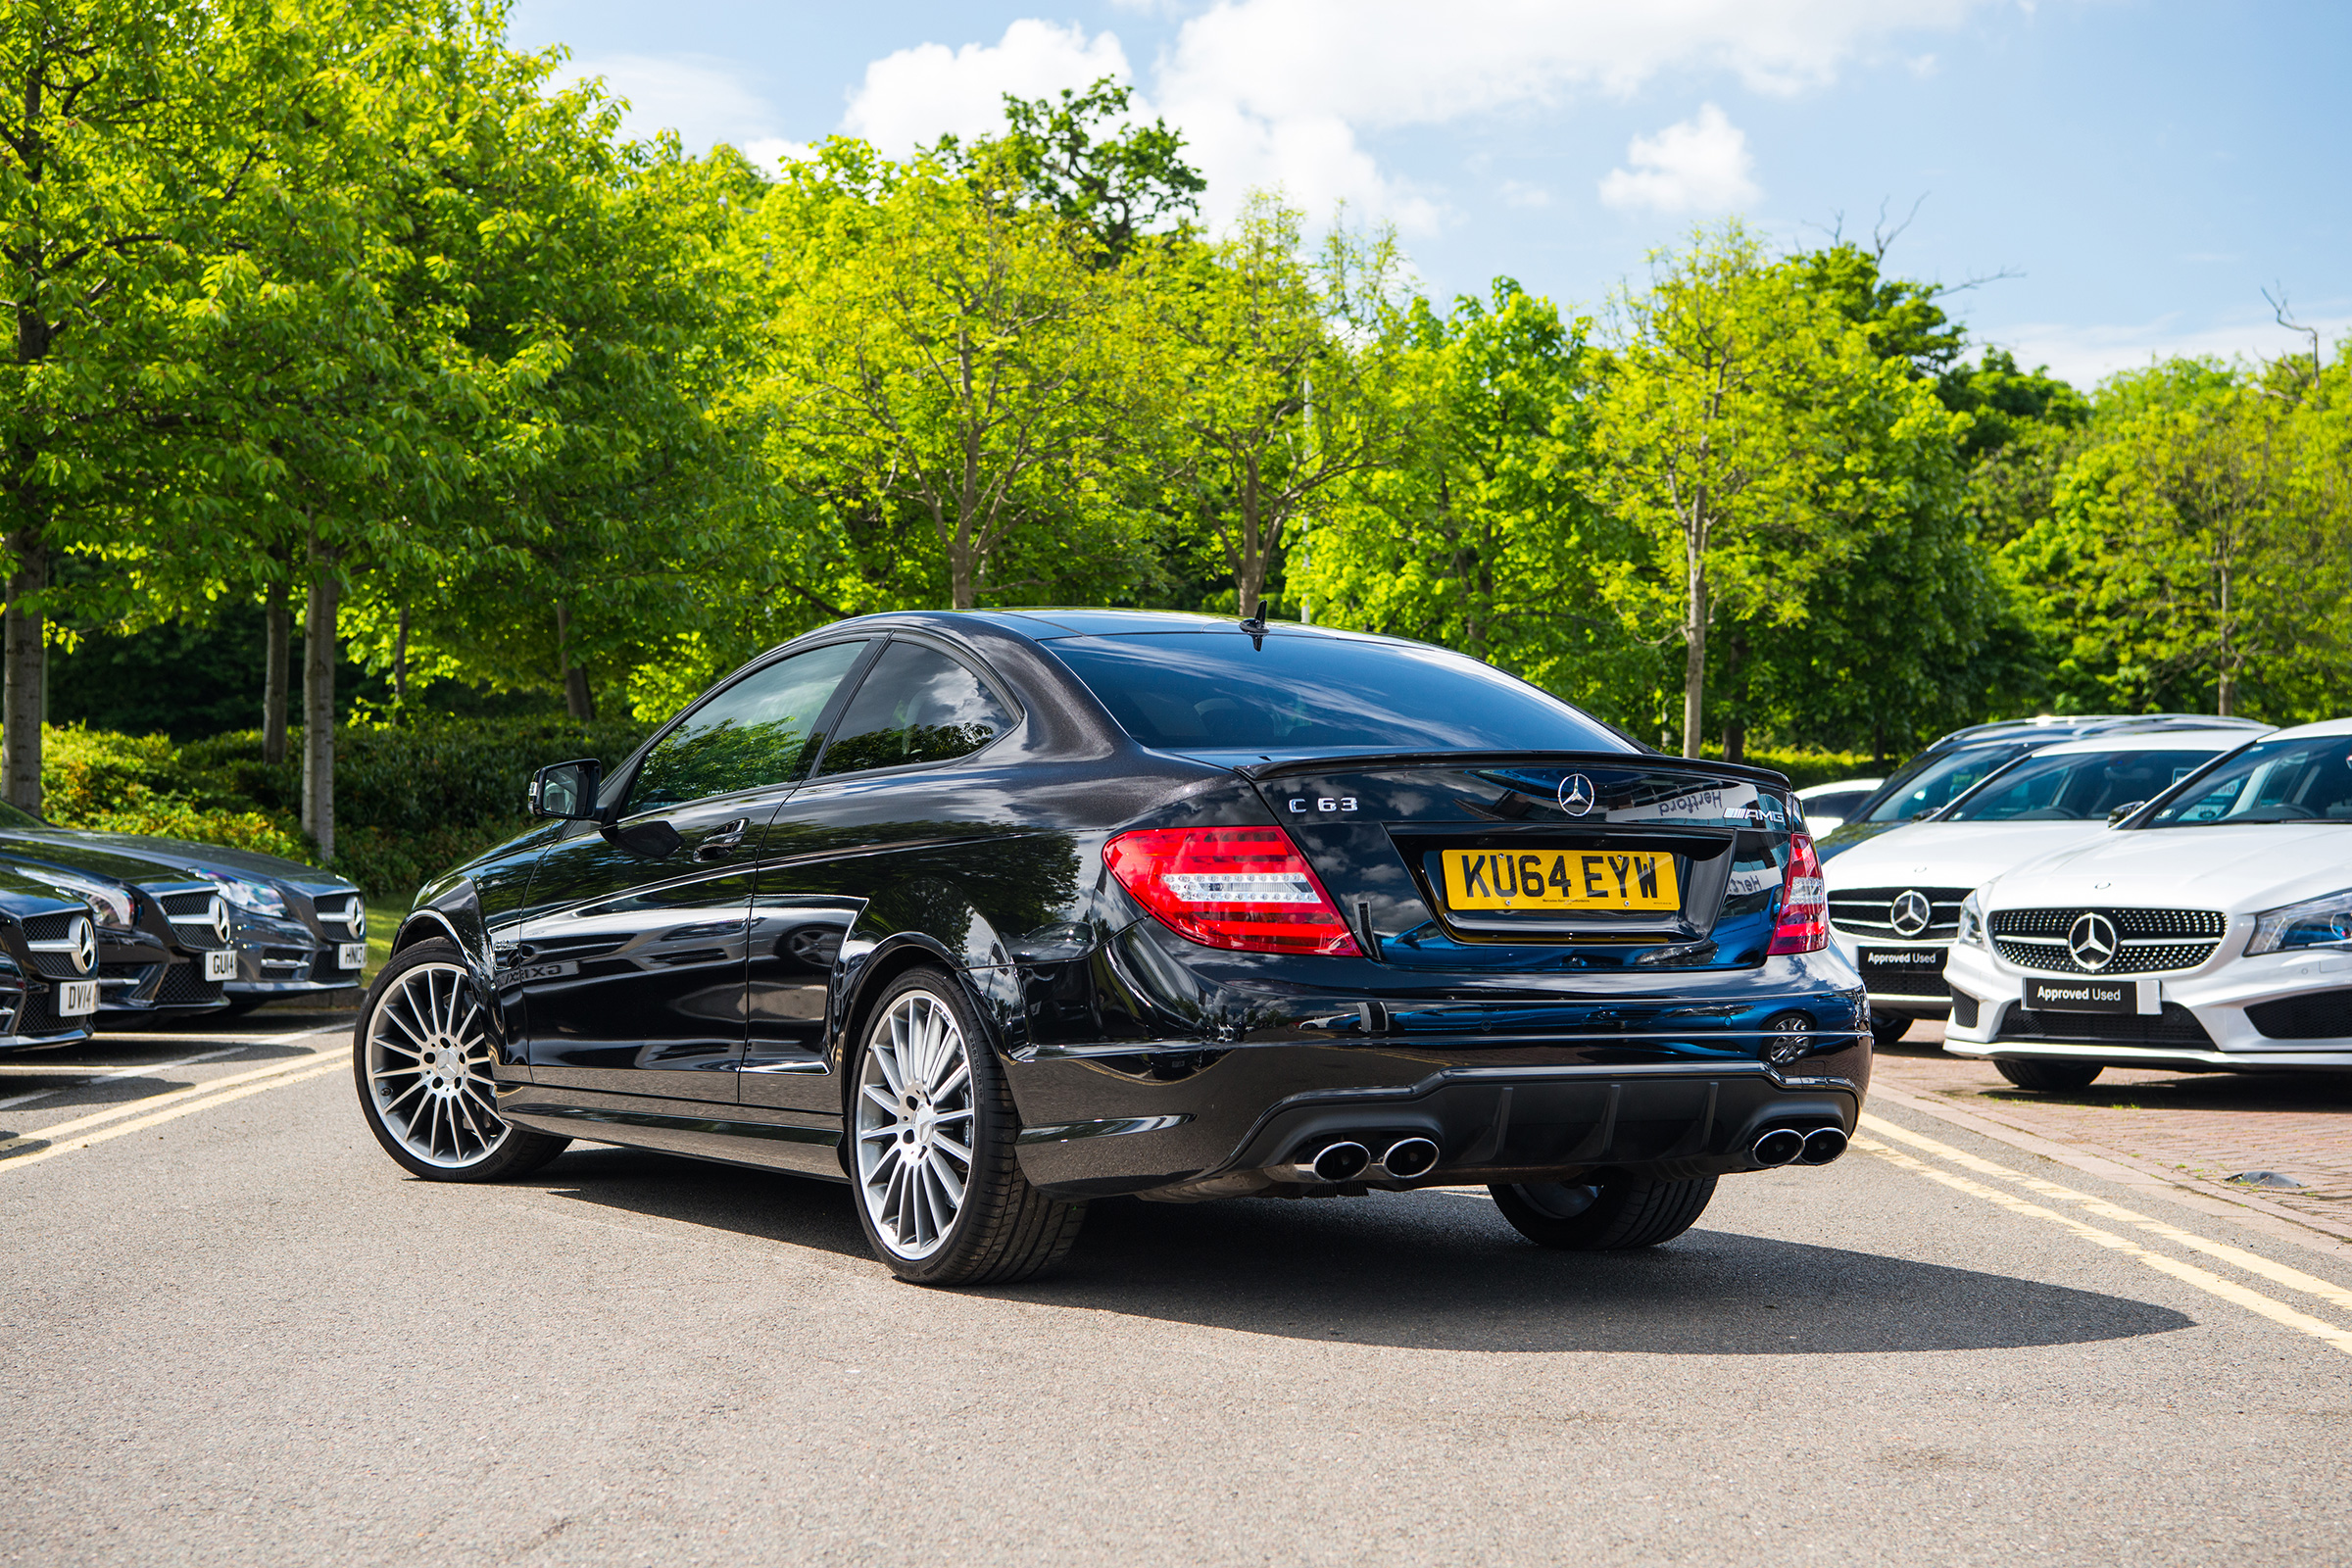 Mercedes-Benz C63 AMG 2008-2014: review, specs and buying